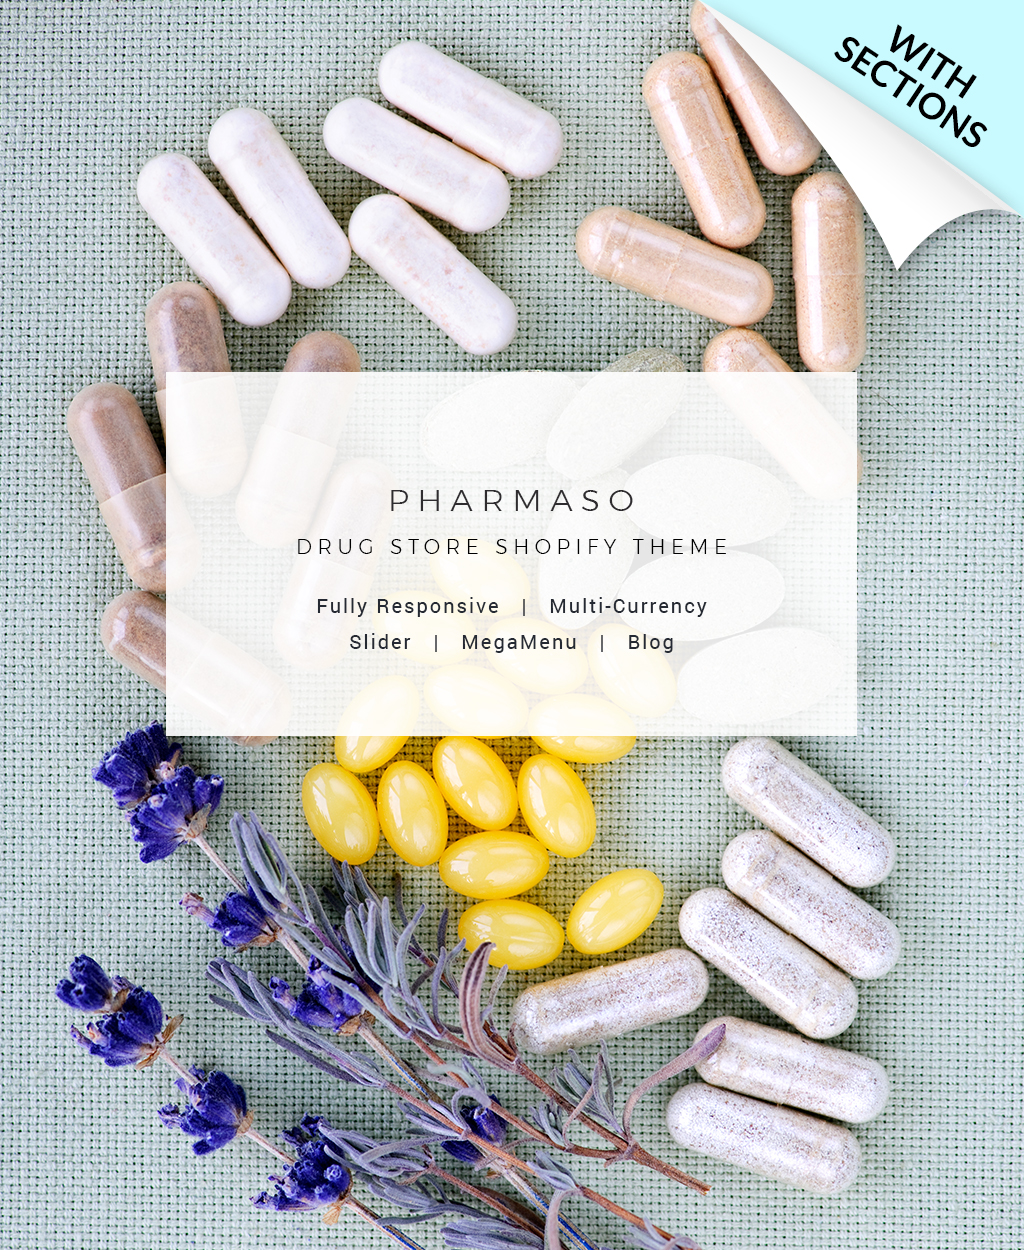 Pharmaso - Drug Store Shopify Theme